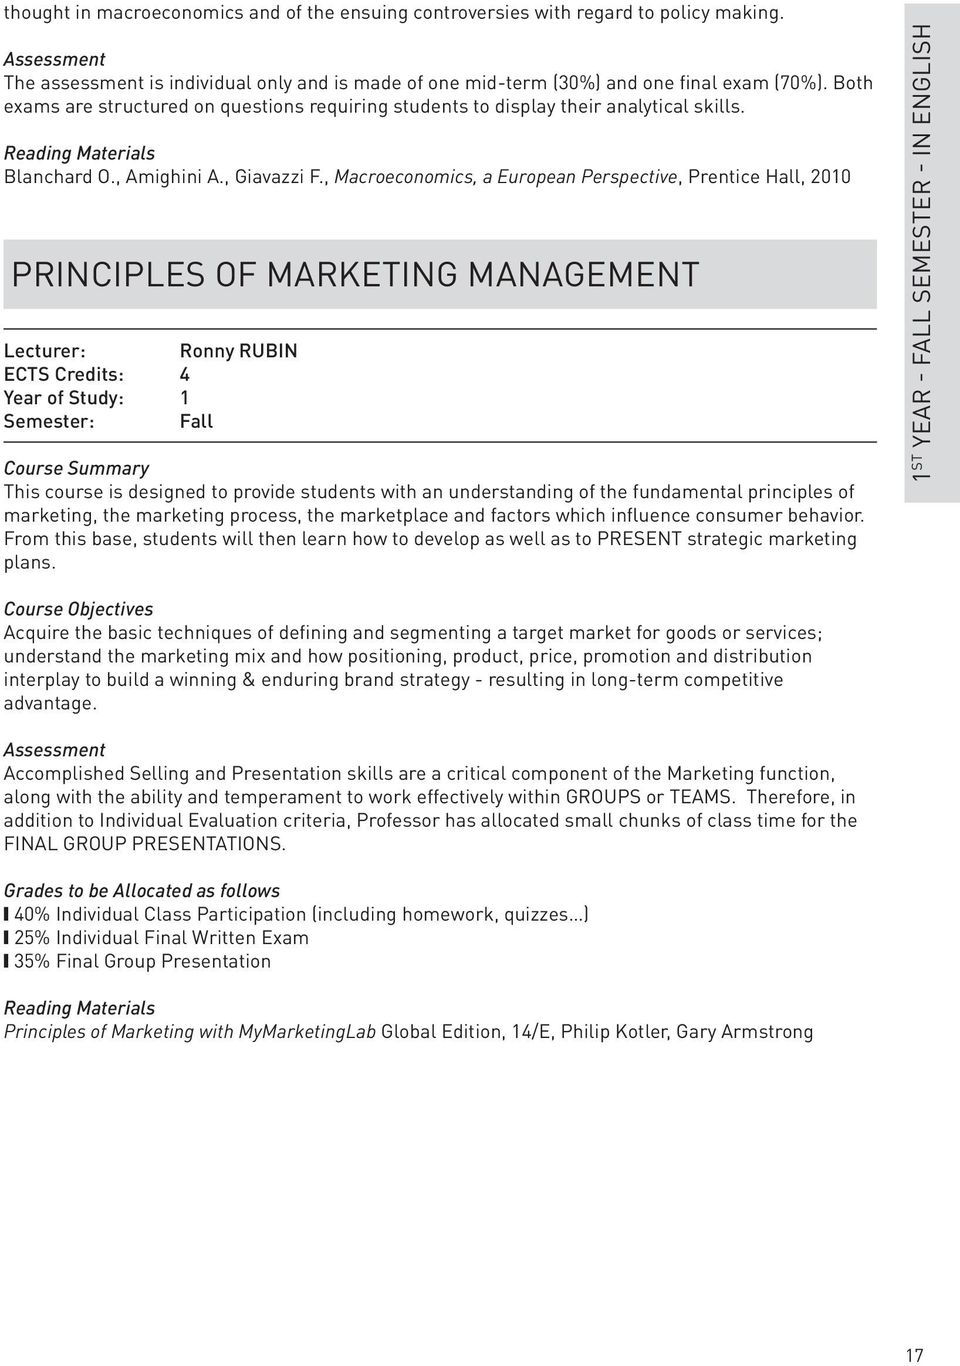 , Macroeconomics, a European Perspective, Prentice Hall, 2010 Principles of Marketing Management Lecturer: Ronny RUBIN ECTS Credits: 4 Year of Study: 1 Semester: Fall Course Summary This course is